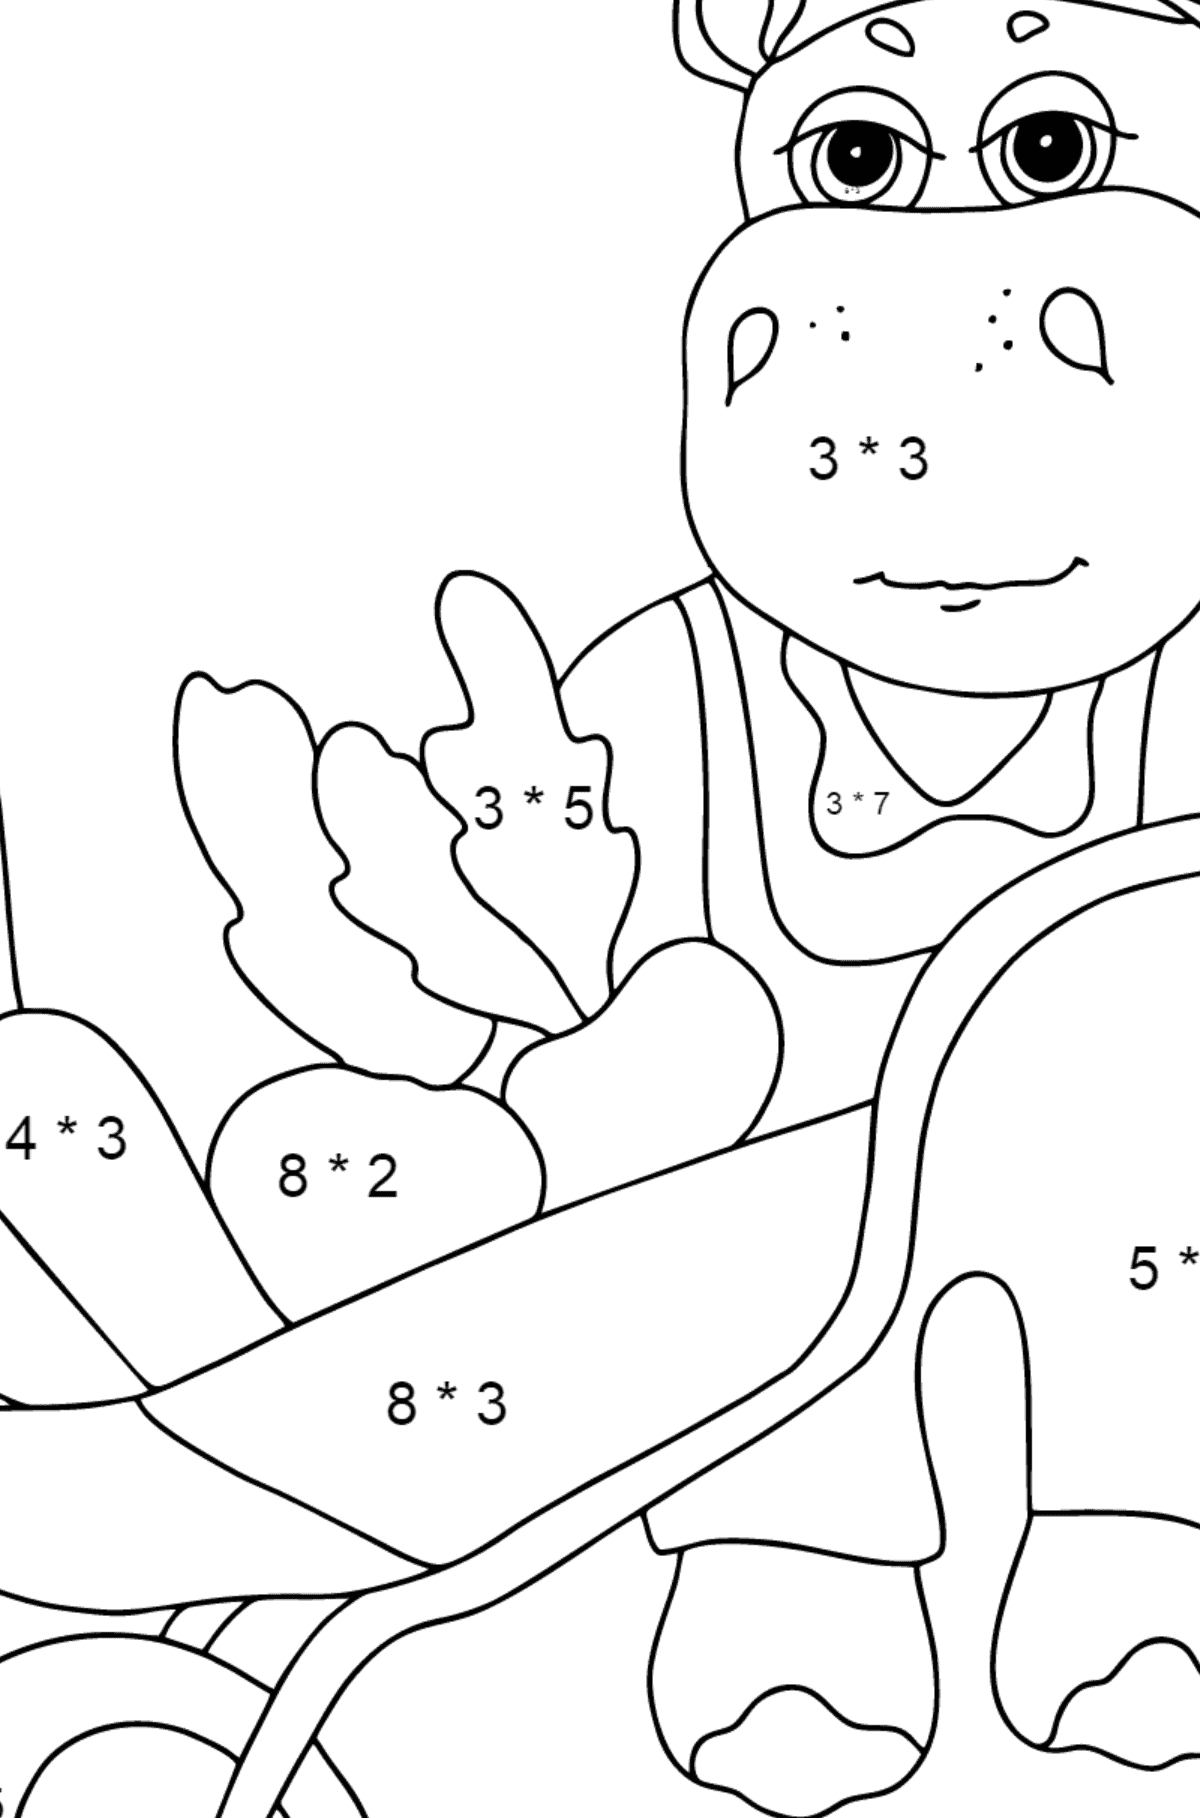 Coloring Page - A Hippo with a Cart for Kids  - Color by Number Multiplication